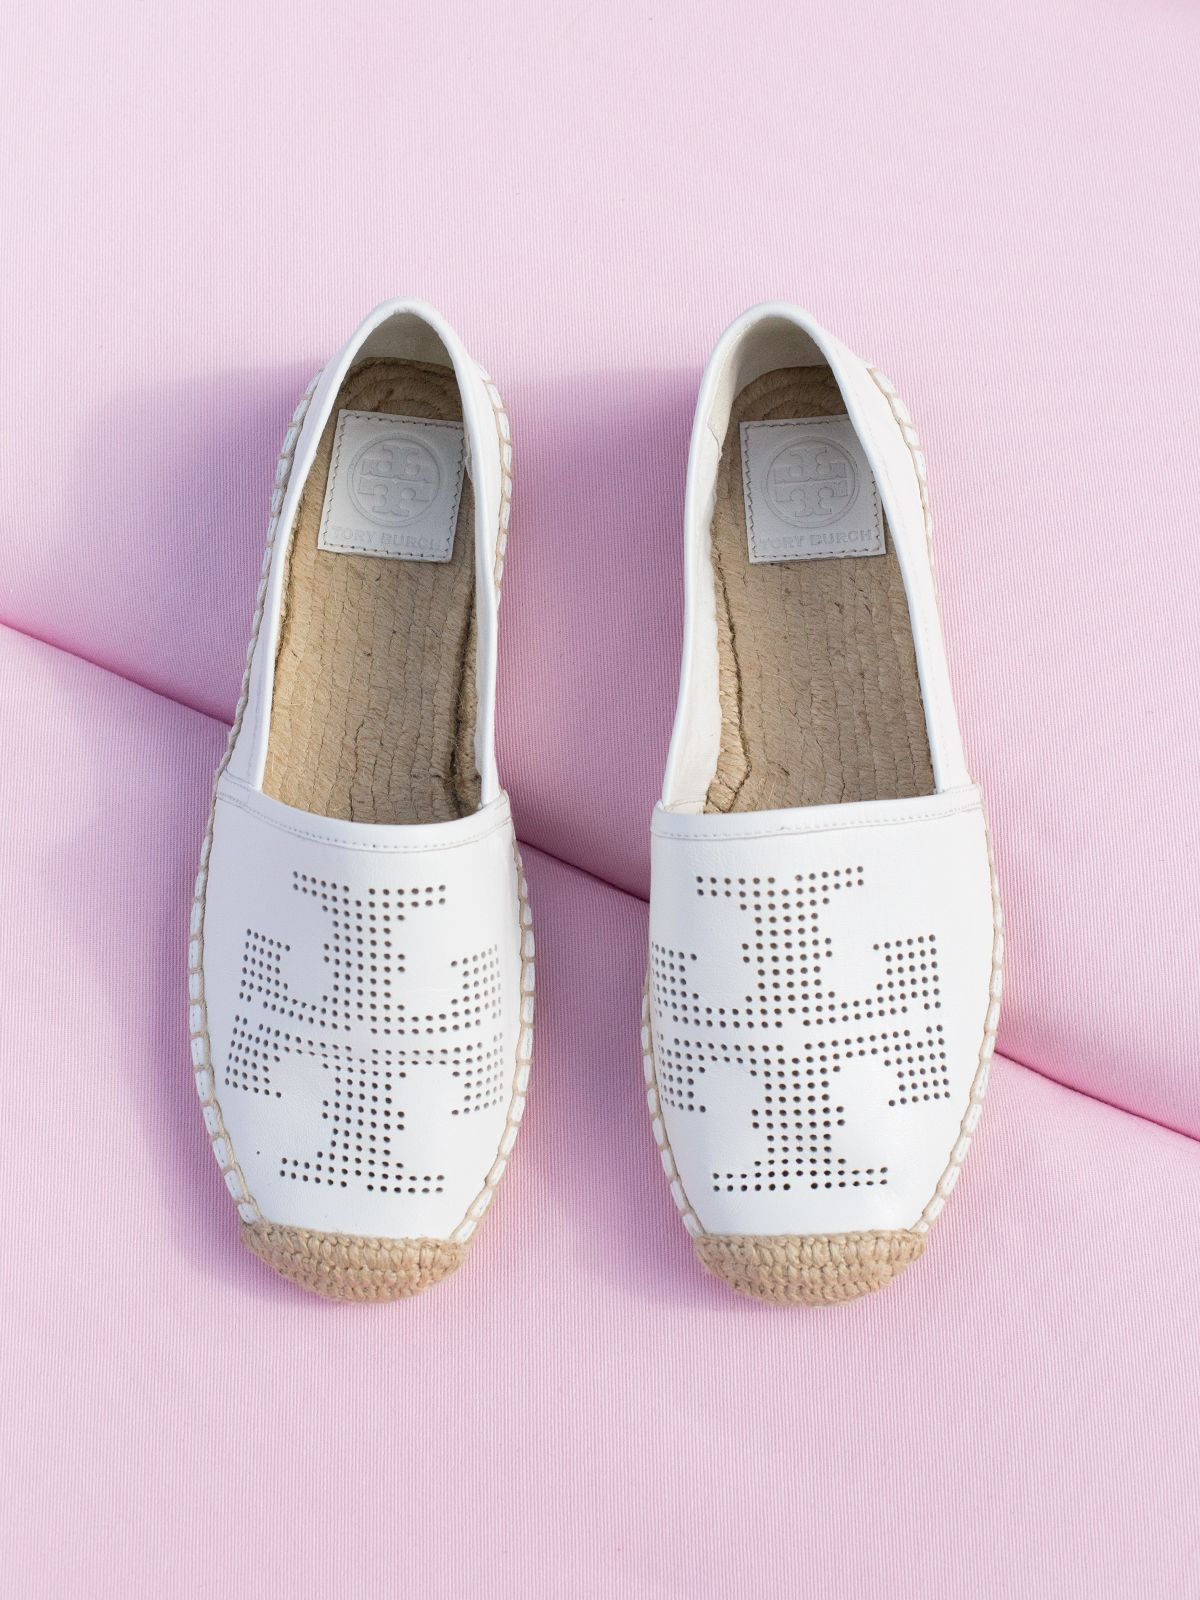 20b1a81d95a76 Tory Burch Perforated Logo Espadrille